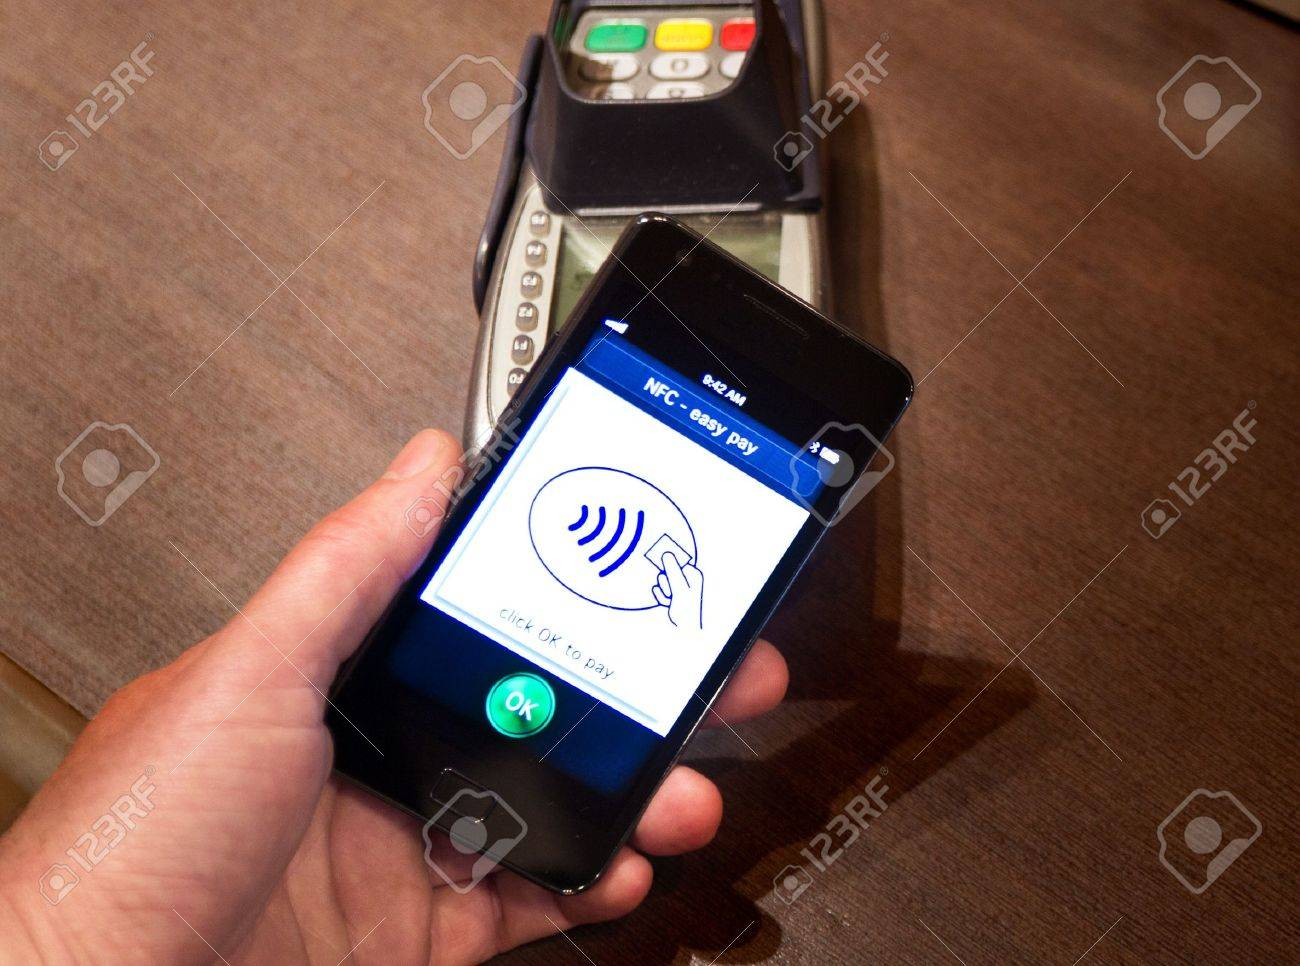 The new way to pay  NFC payments via mobile phone, etc Stock Photo - 13492000